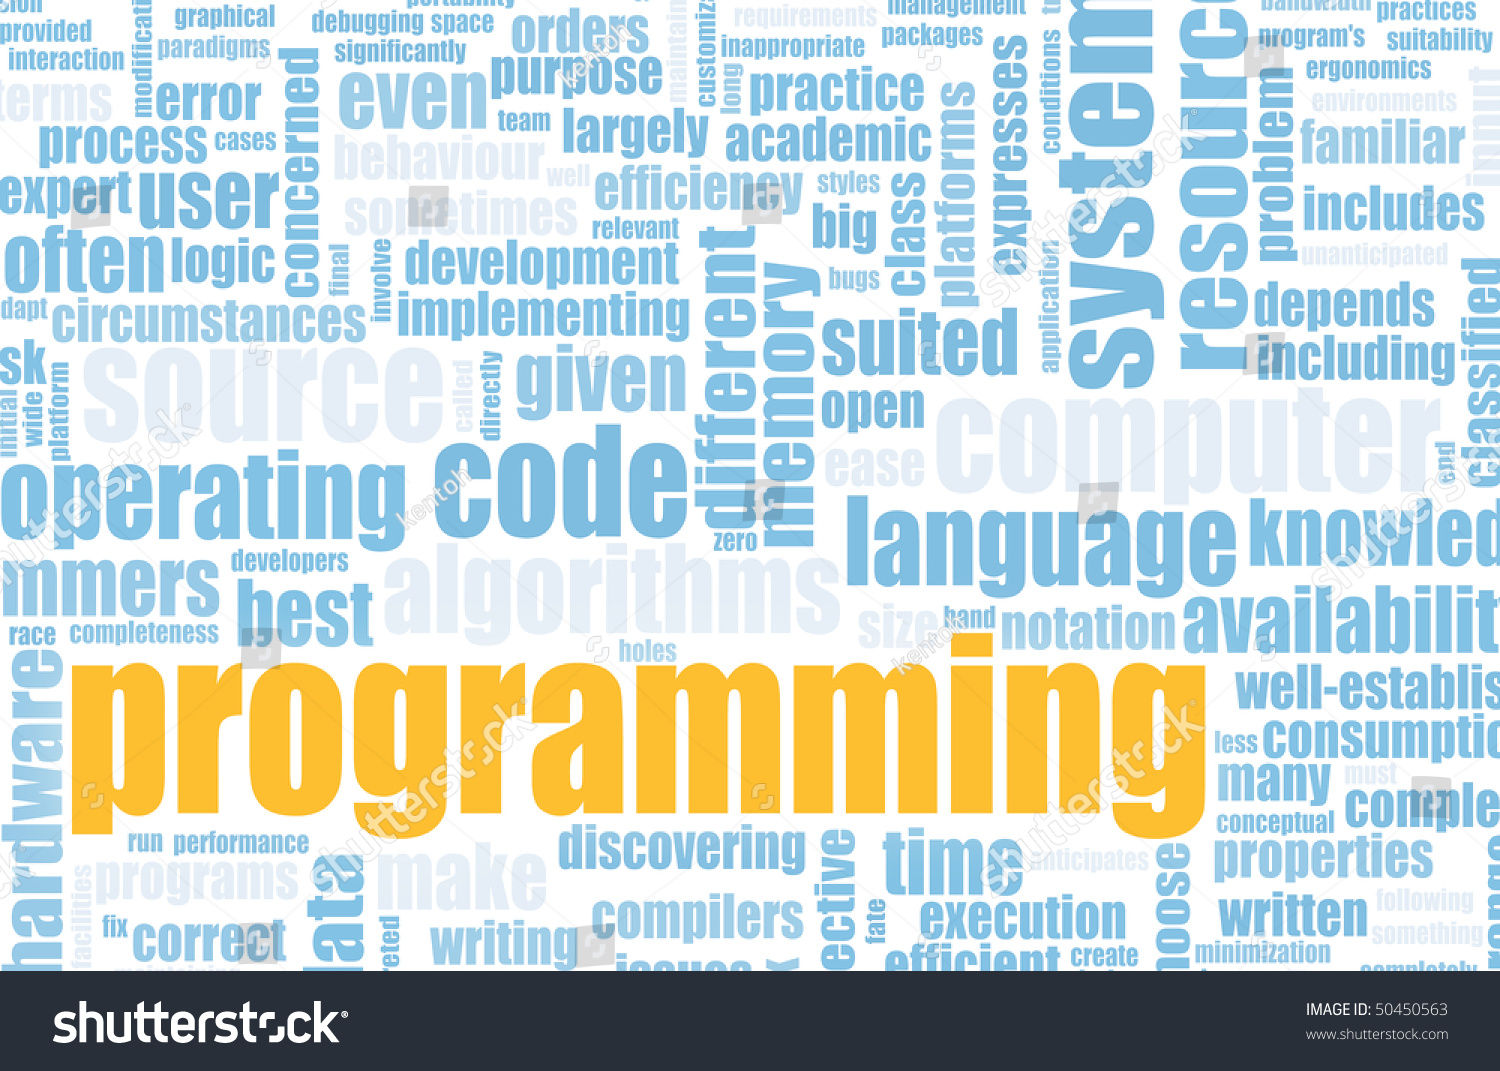 Computer Programming Code Concept As A Abstract Stock